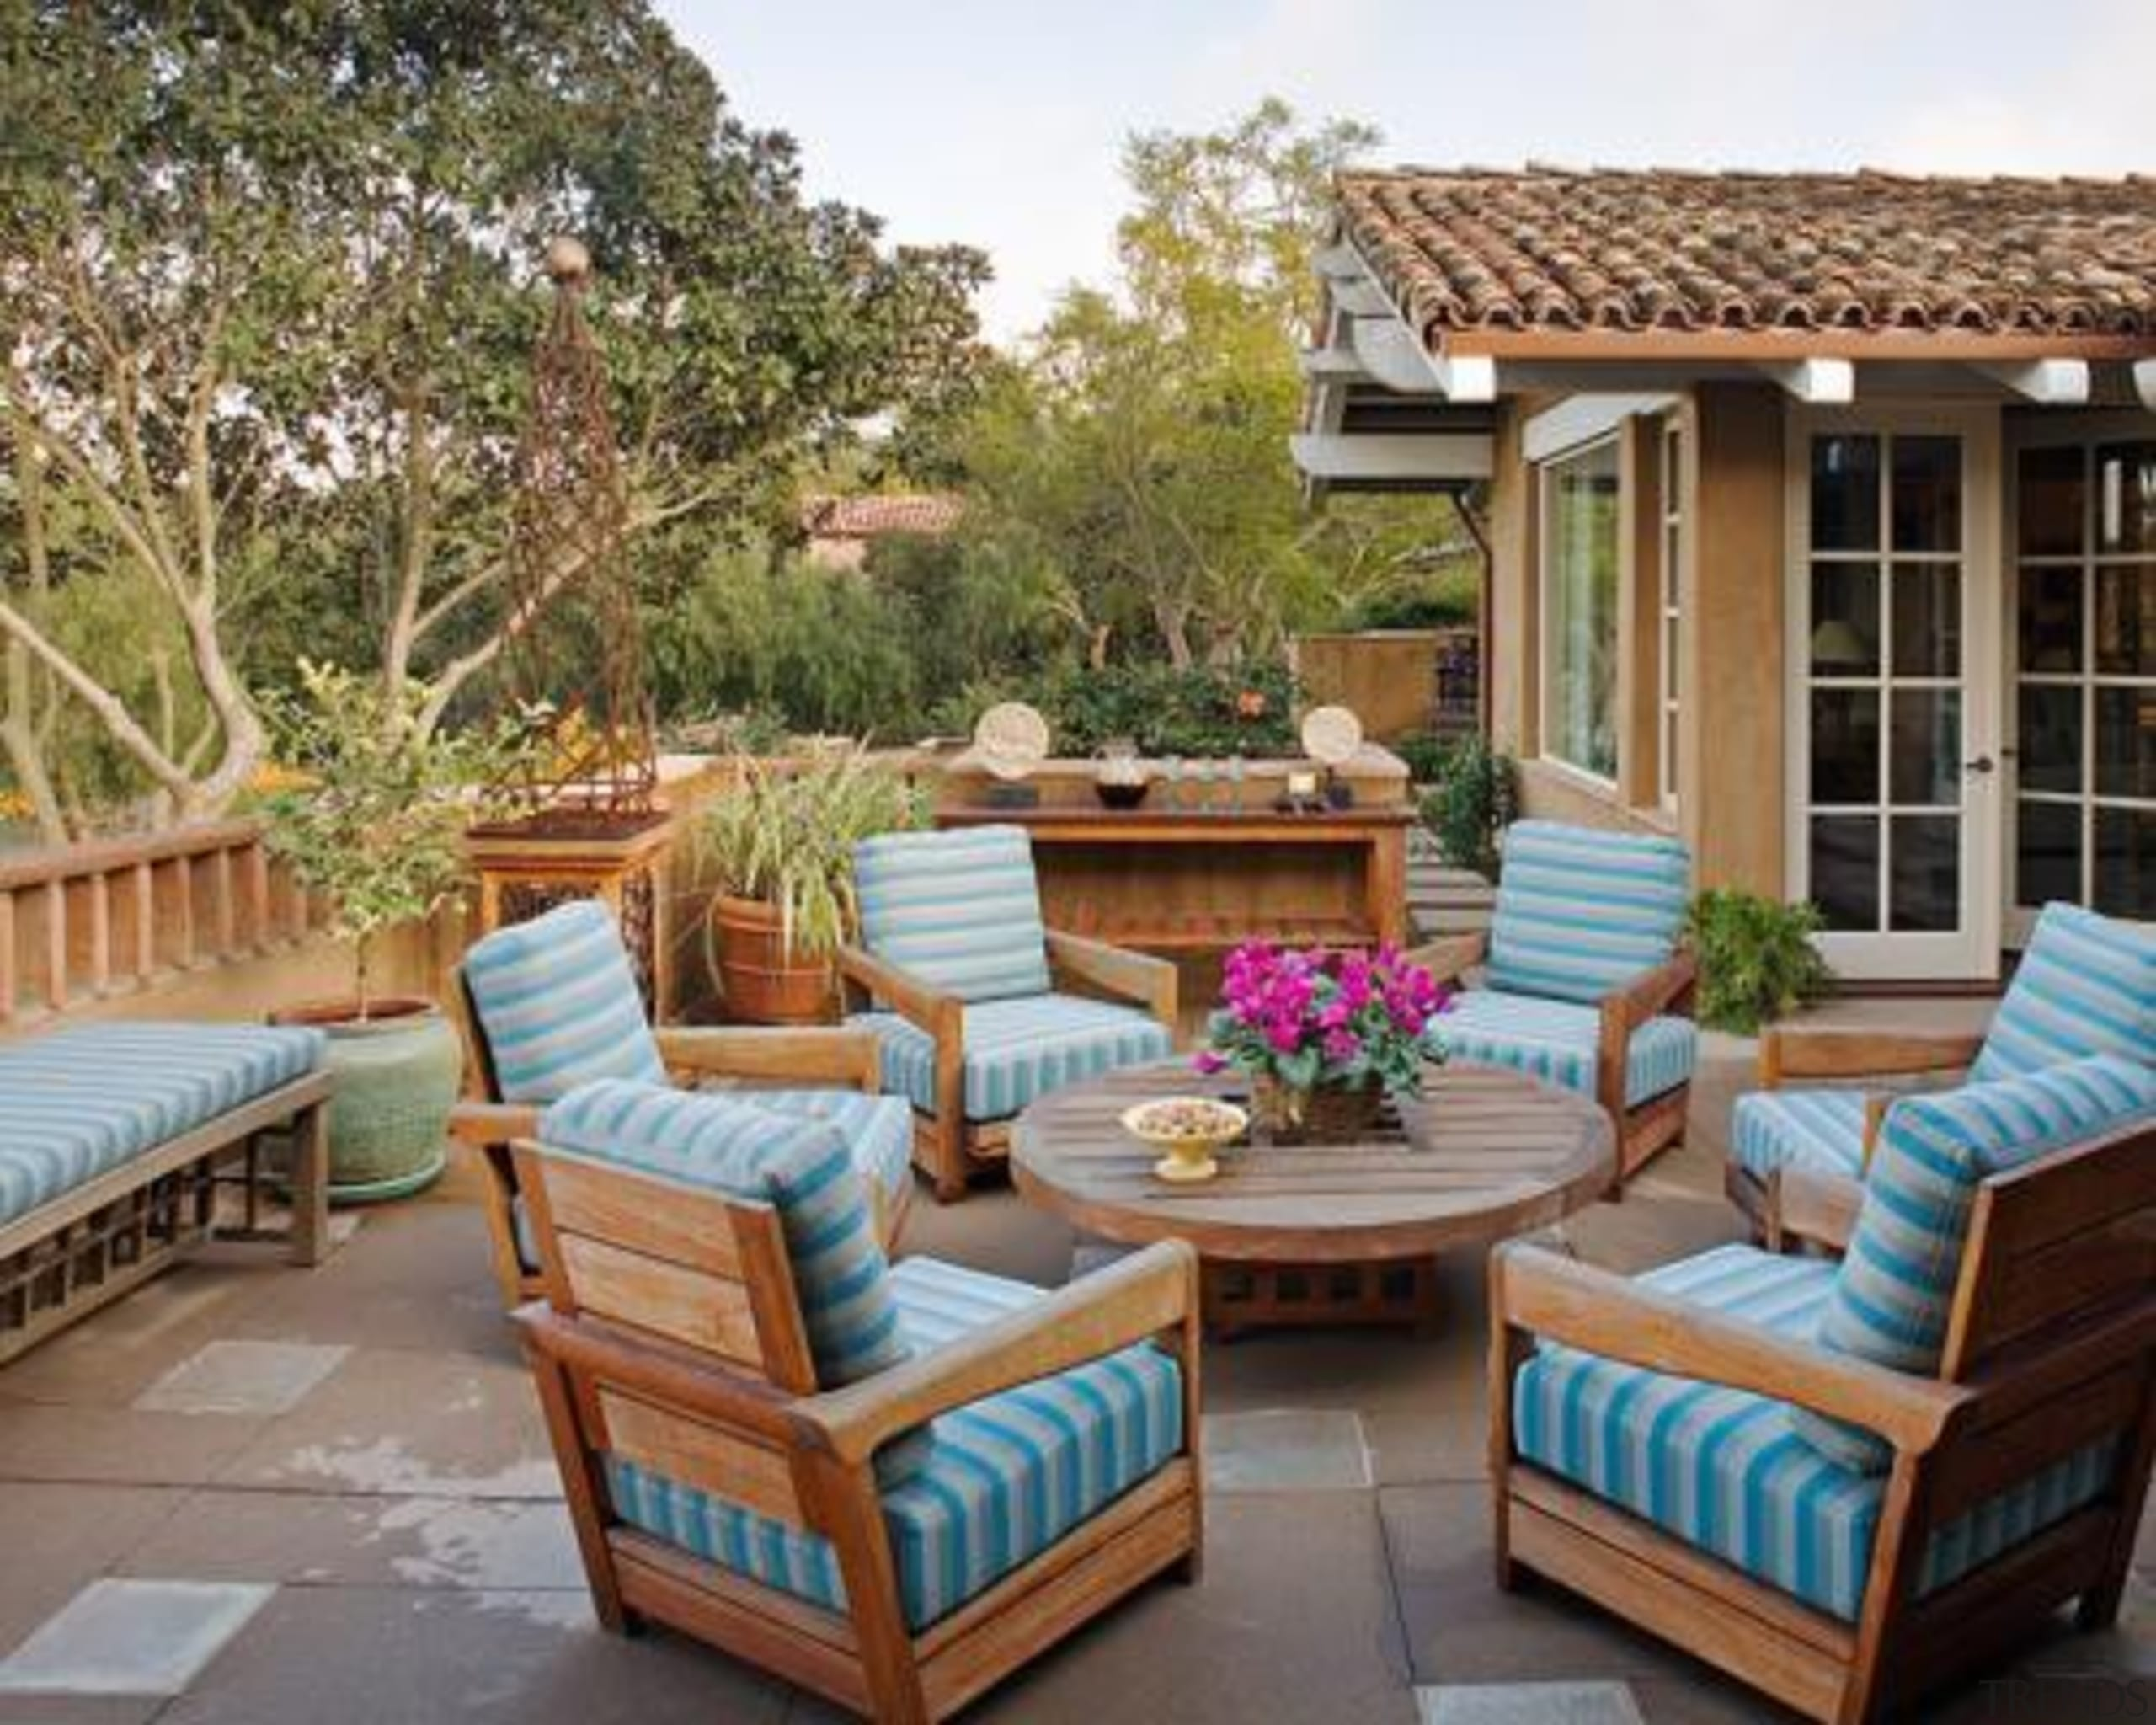 5. Being listened to and understoodYou might think backyard, estate, furniture, home, living room, outdoor furniture, outdoor structure, patio, property, real estate, brown, gray